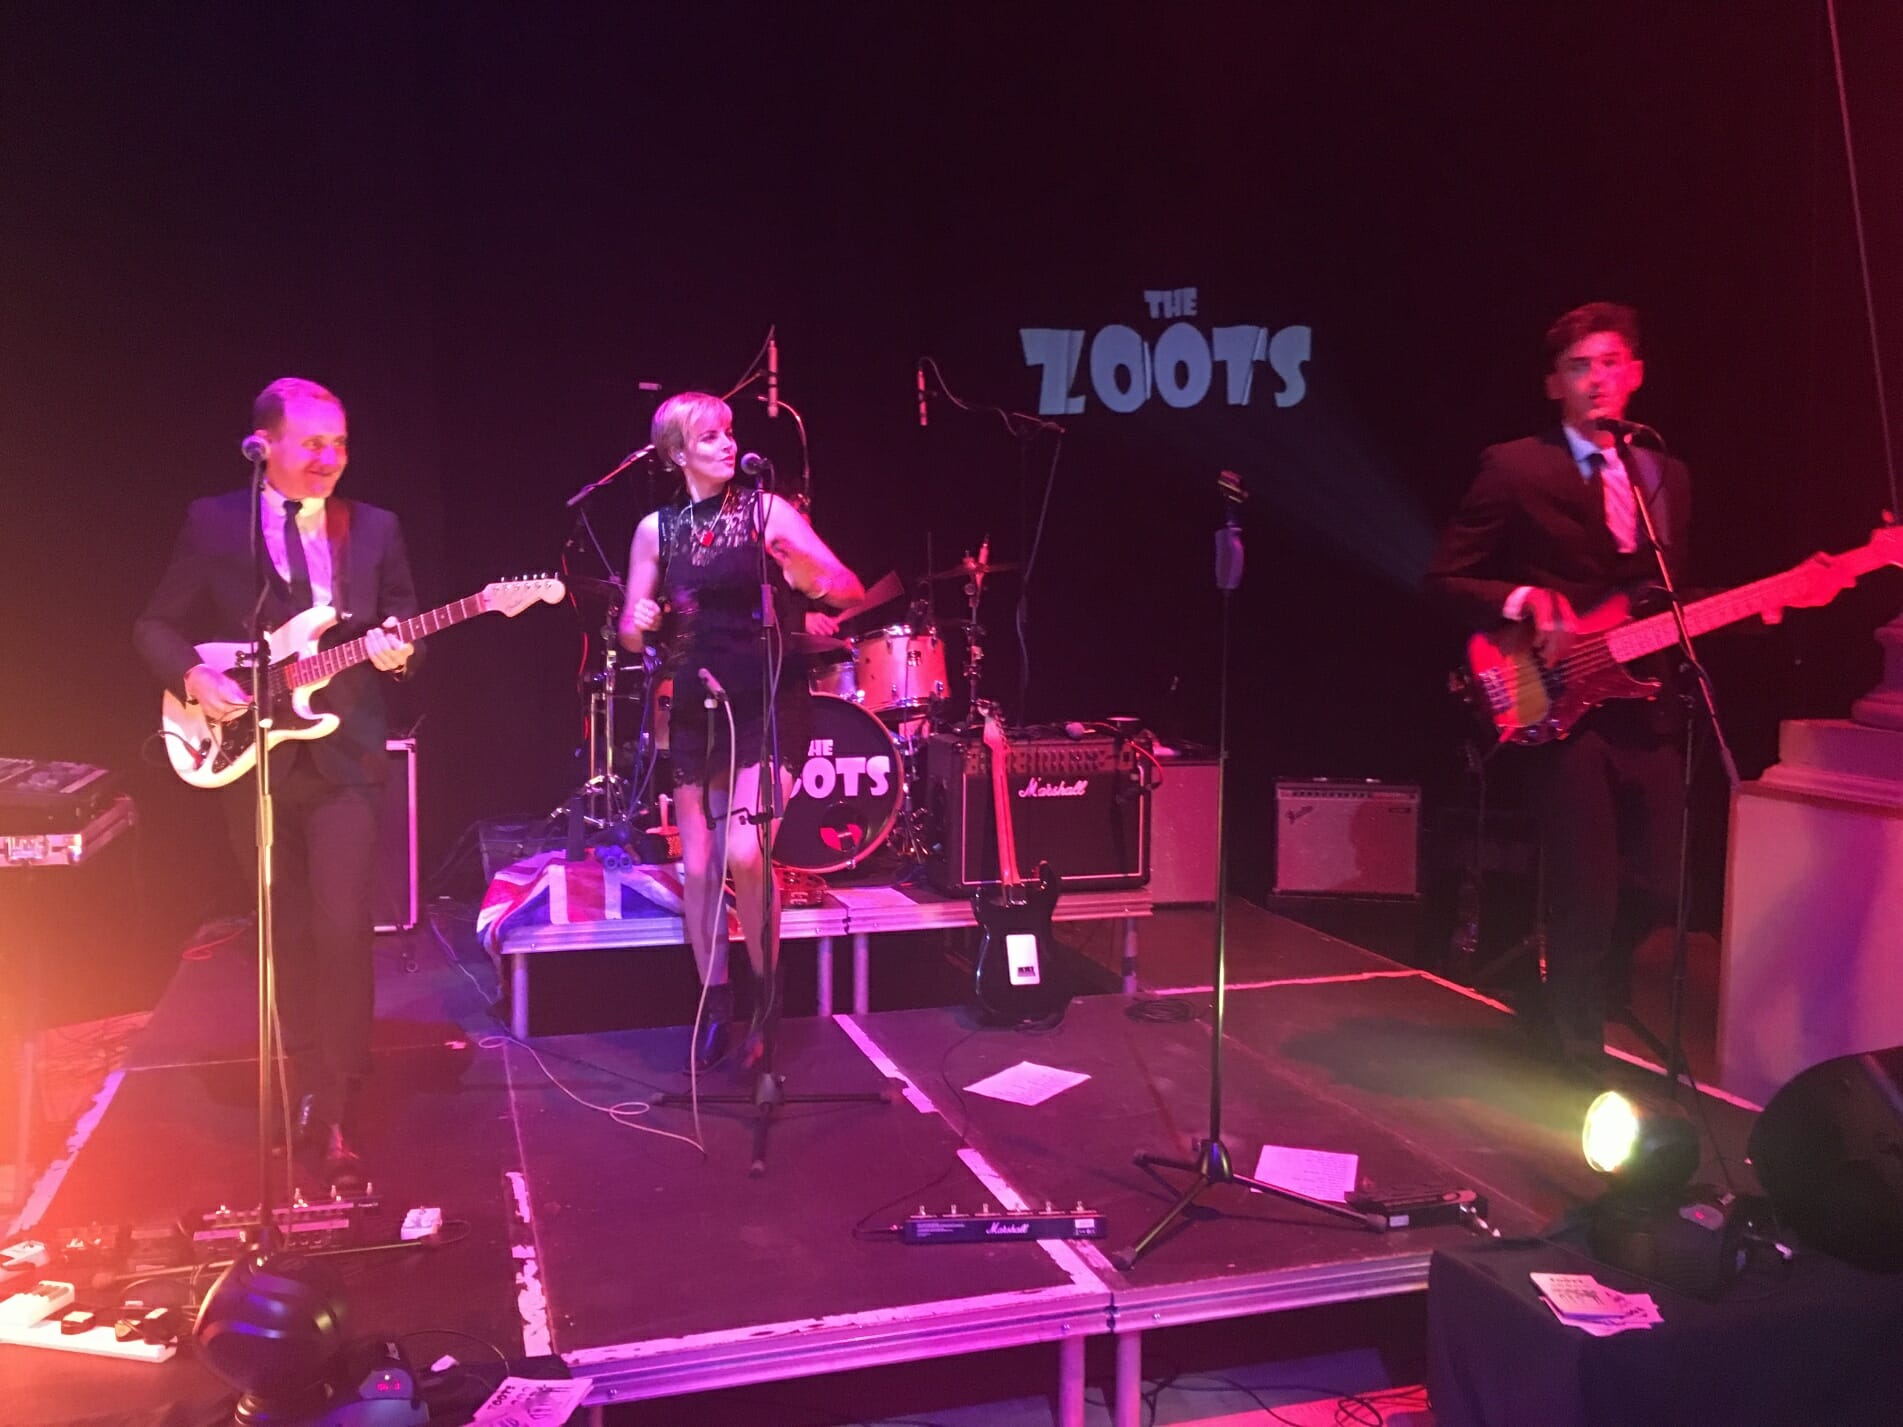 party band bristol, function band bristol, band circo media, band for hire bristol, the zoots